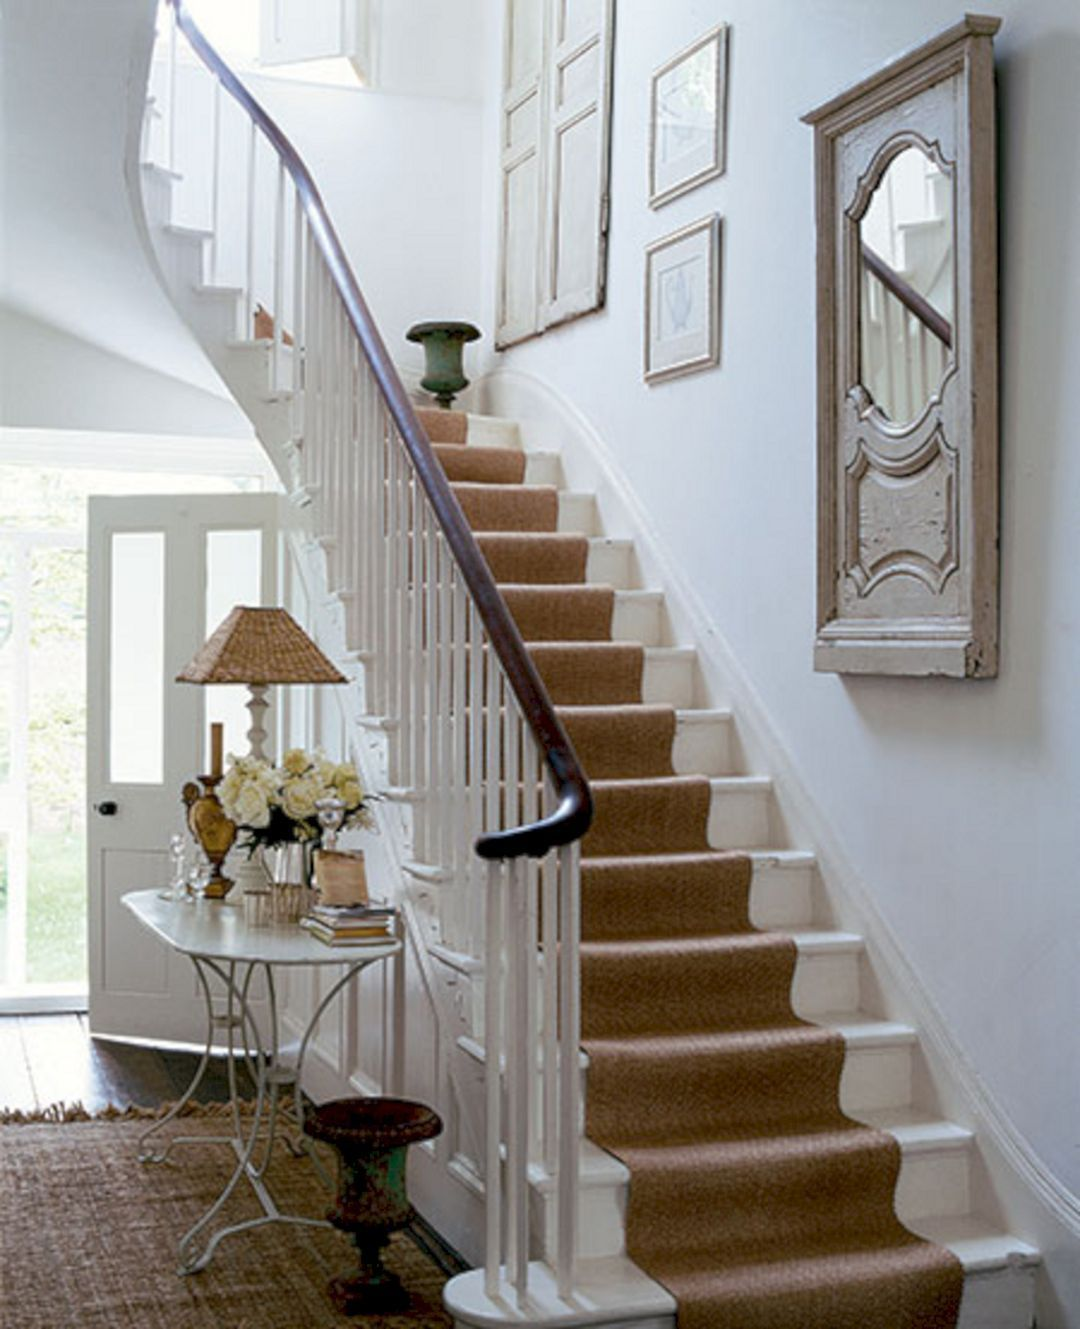 Best White Painted Stairs With Carpet Runner White Painted Stairs With Carpet Runner Design Ideas 640 x 480